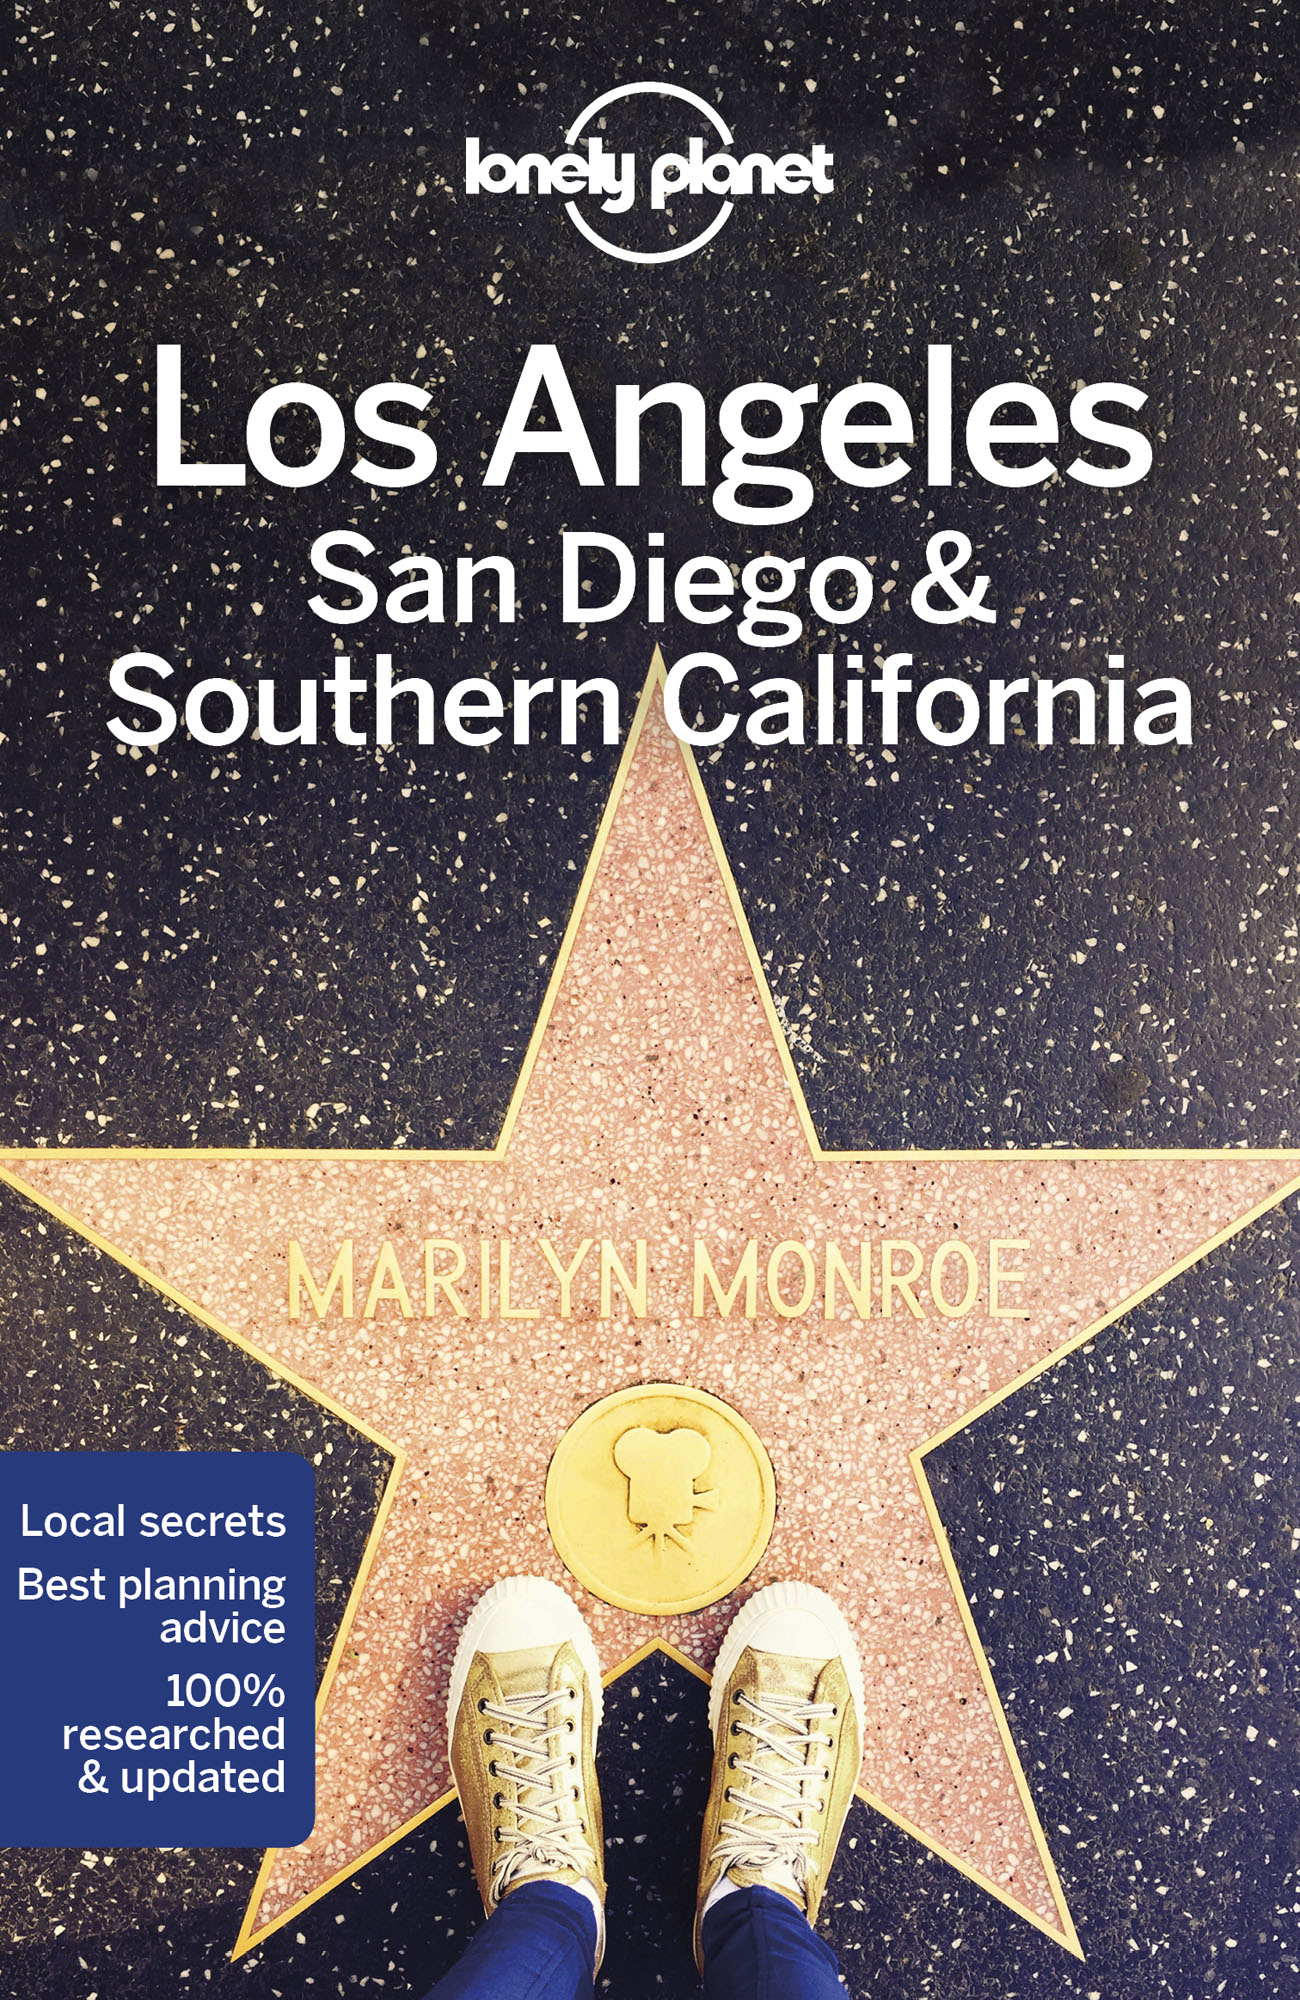 Los Angeles, San Diego & S. California průvodce 5th 2018 Lonely Planet